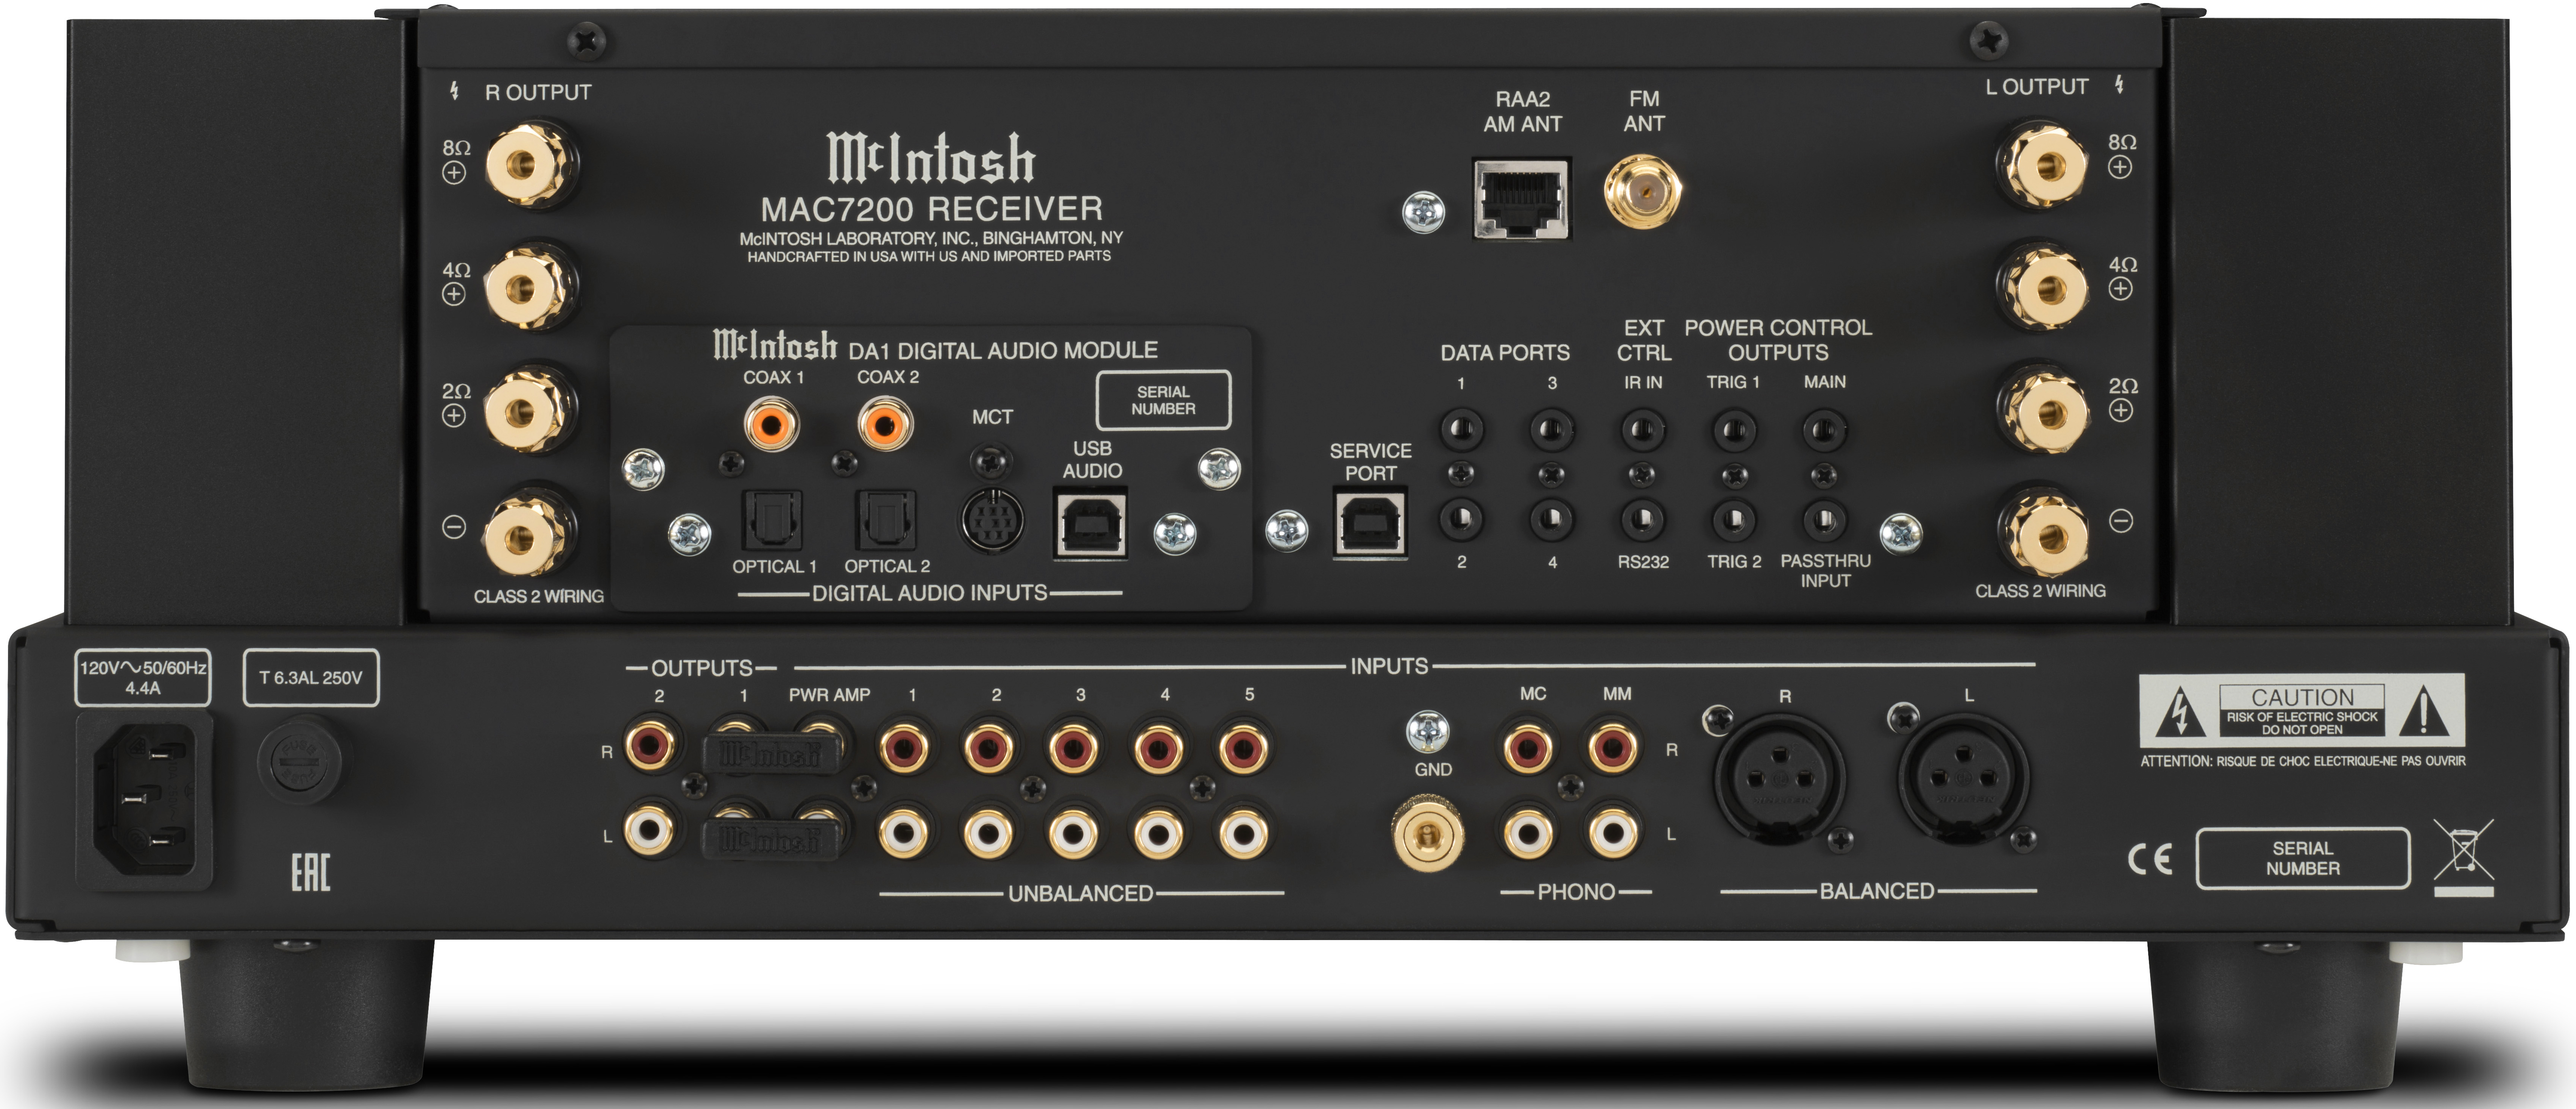 Mcintosh Announces Ma7200 Integrated Amplifier And Mac7200 Receiver Class 2 Audio Wiring The